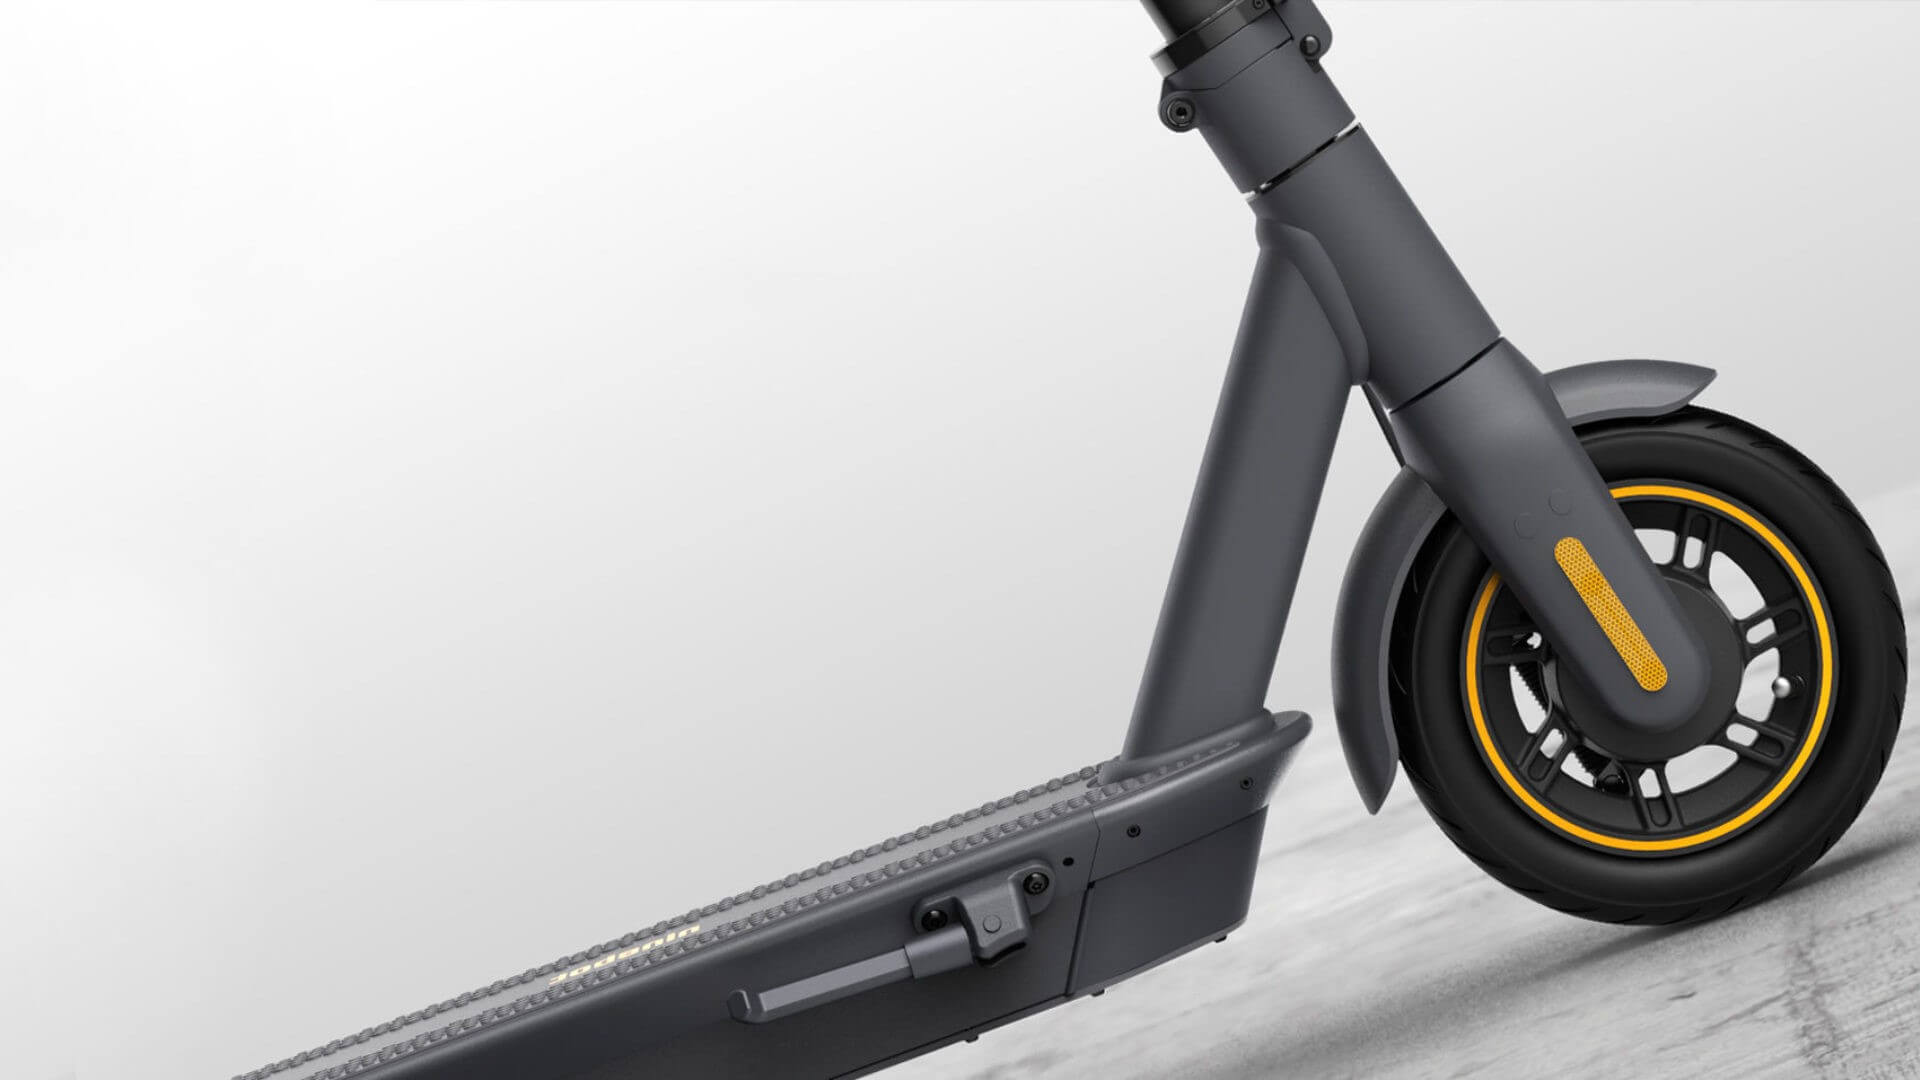 Close up tilted shot of the Segway Max